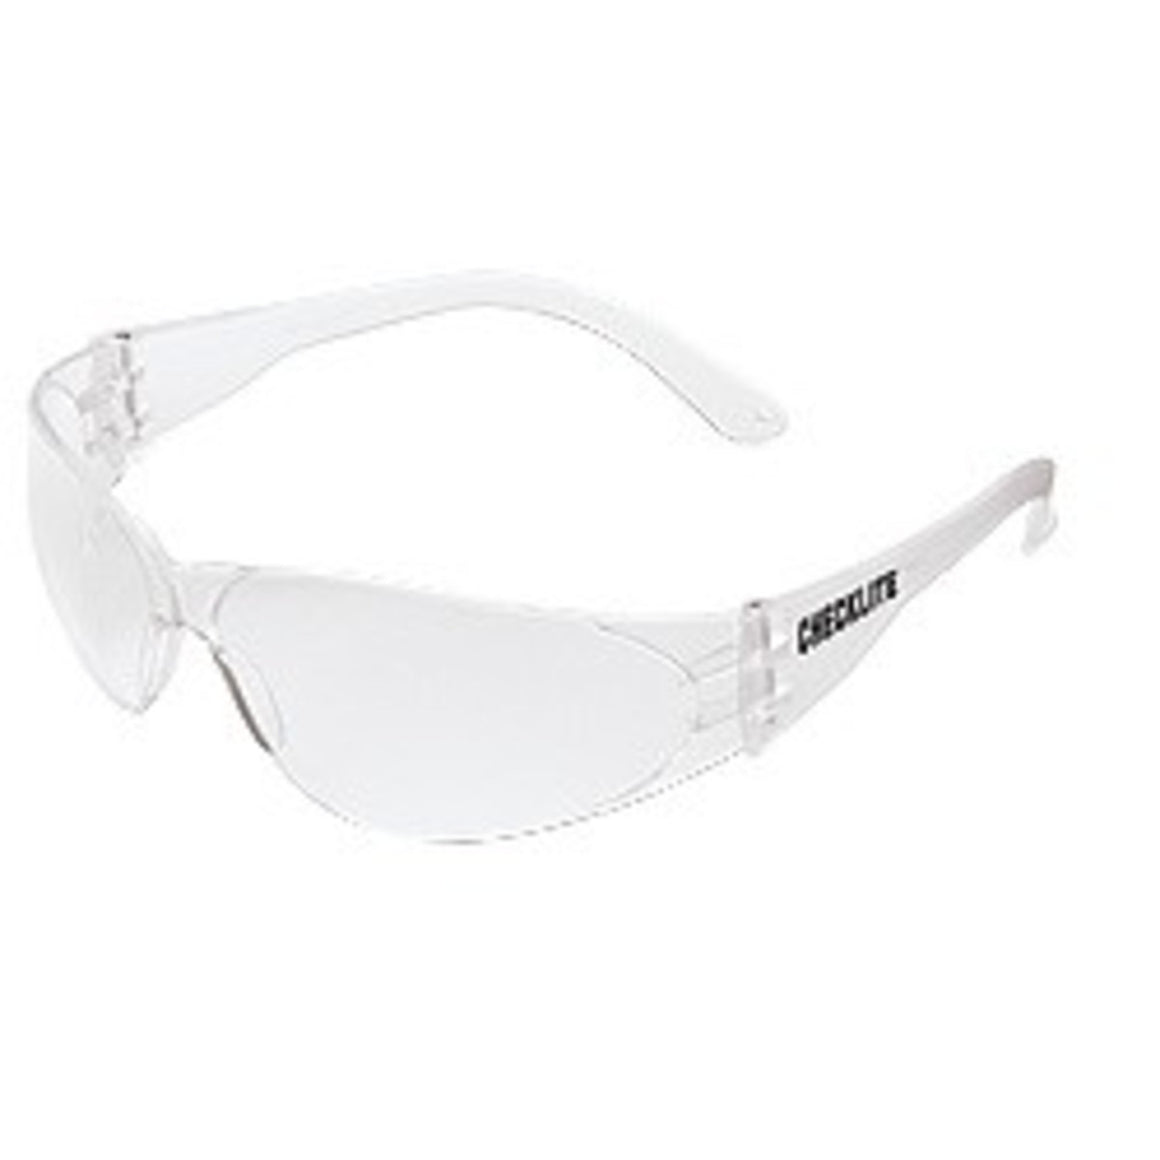 MCR Checklite Safety Glasses,Wrap Around,Clear Lens